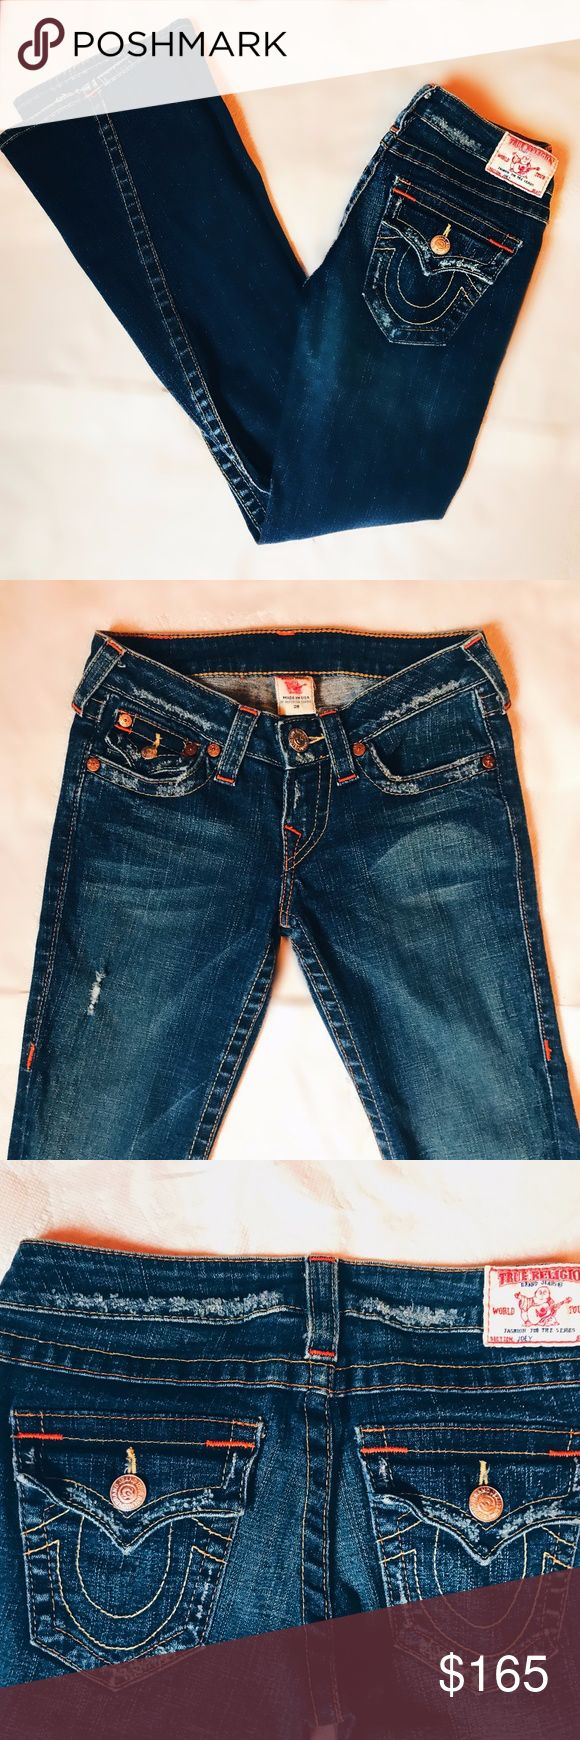 True Religion Designer Women's Jeans Bootcut Women's True Religion designer jeans never worn, zero rips or stains, in mint condition. True Religion traditional style bootcut jeans with orange styling True Religion Jeans Boot Cut